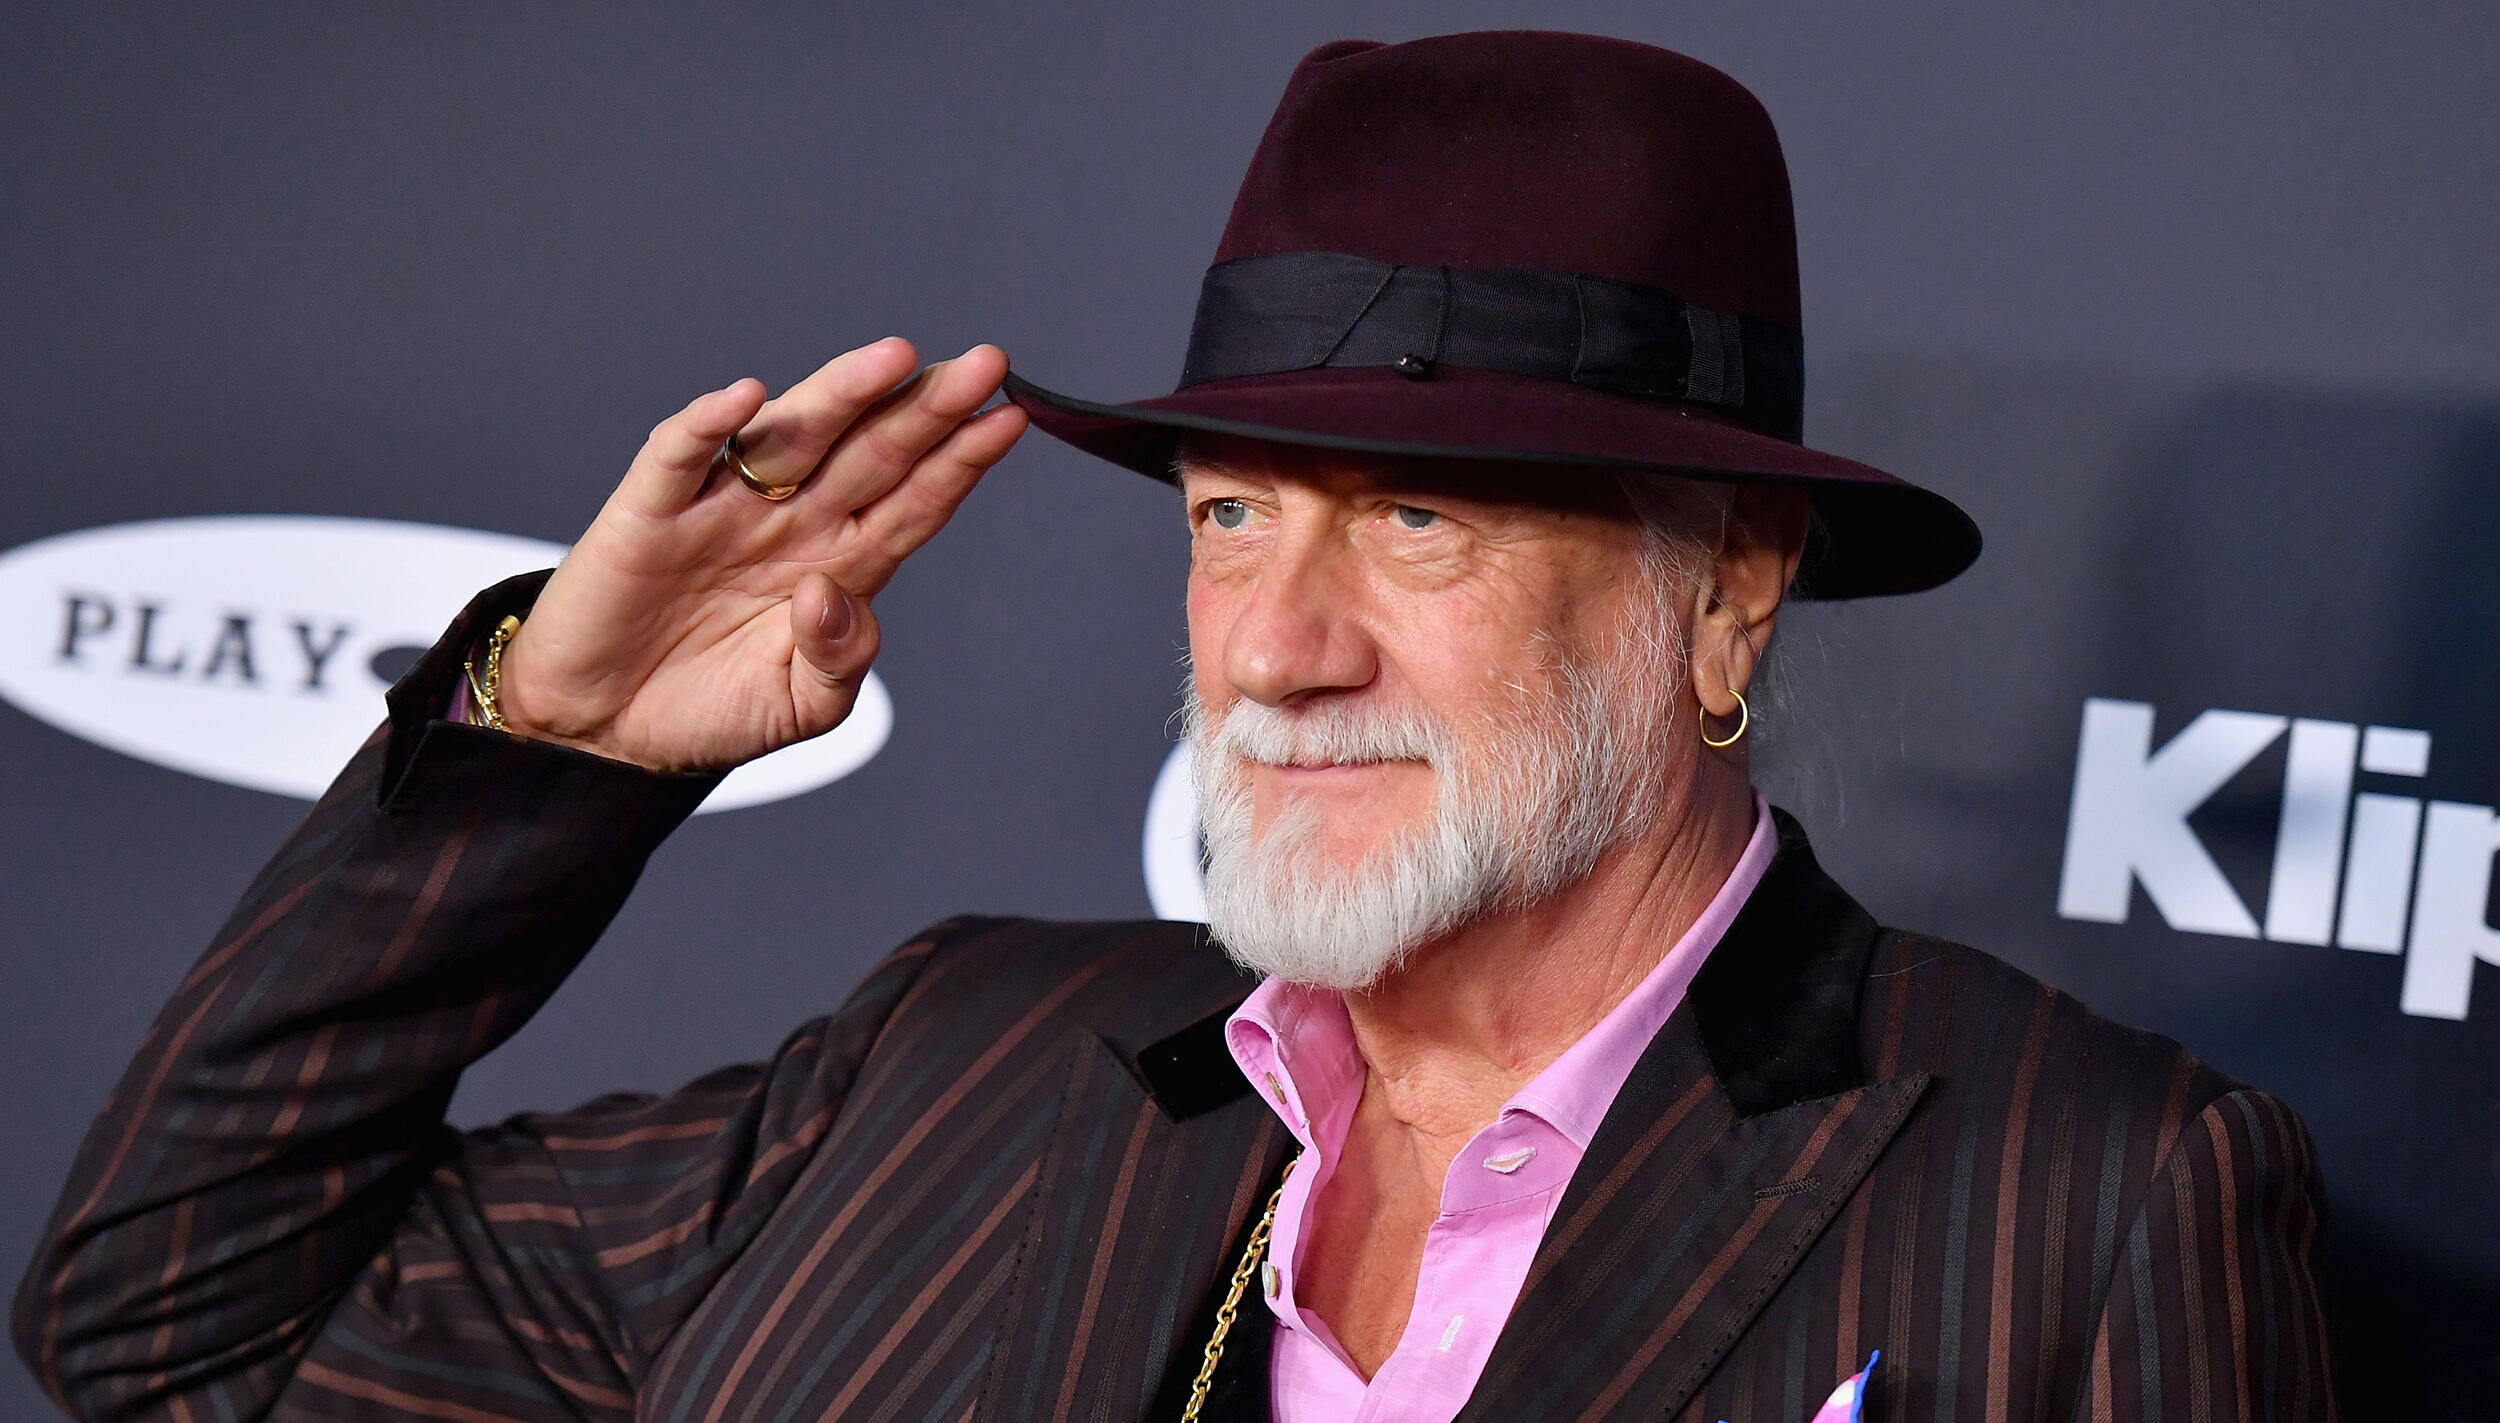 Fleetwood Mac 'Owes' Fan For Viral TikTok Video, Mick Fleetwood Says